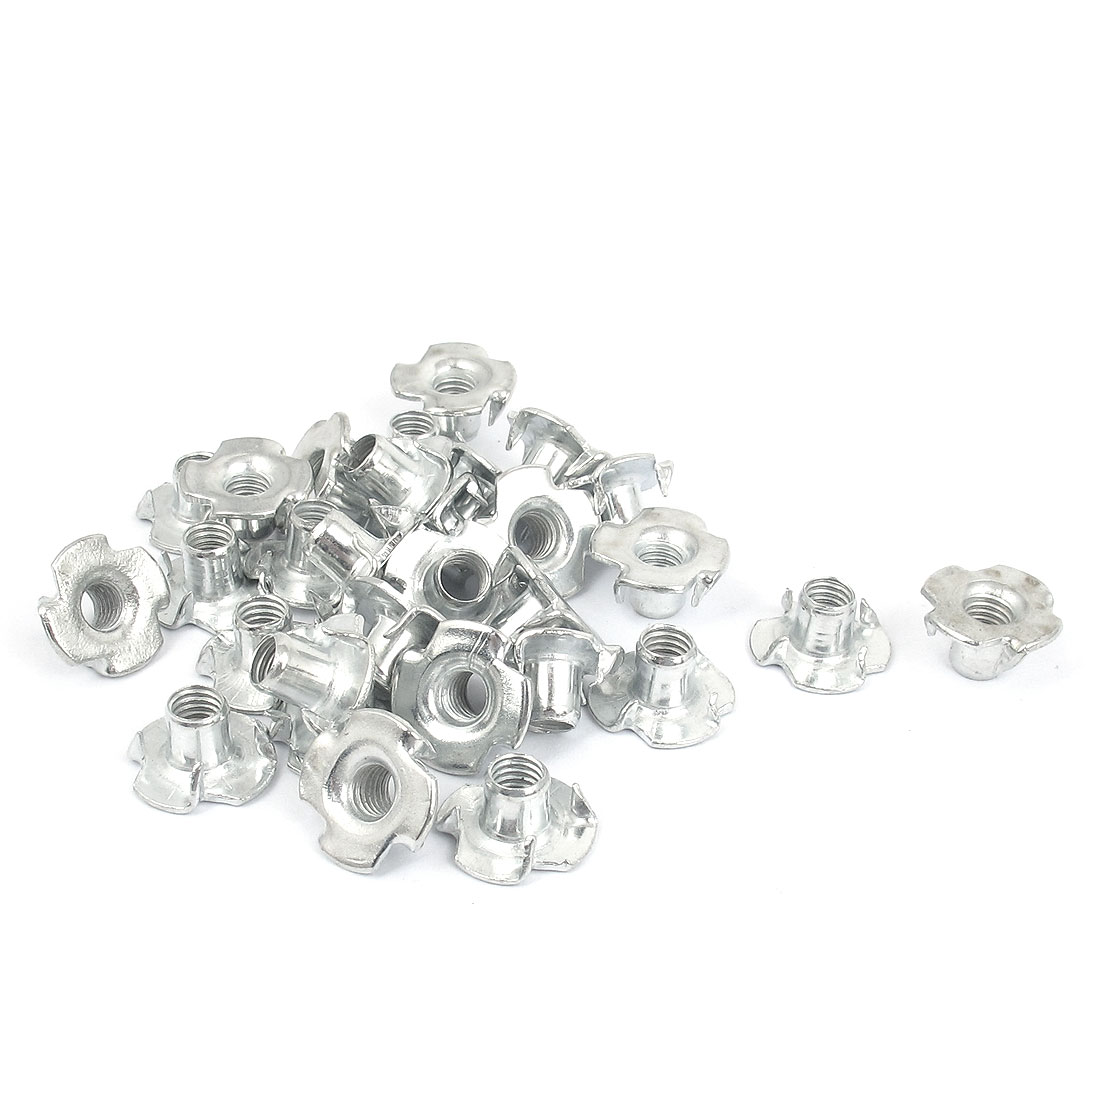 30 Pcs M6x1mm T Nut Zinc Plated 4 Prong Tee Nuts Fasteners